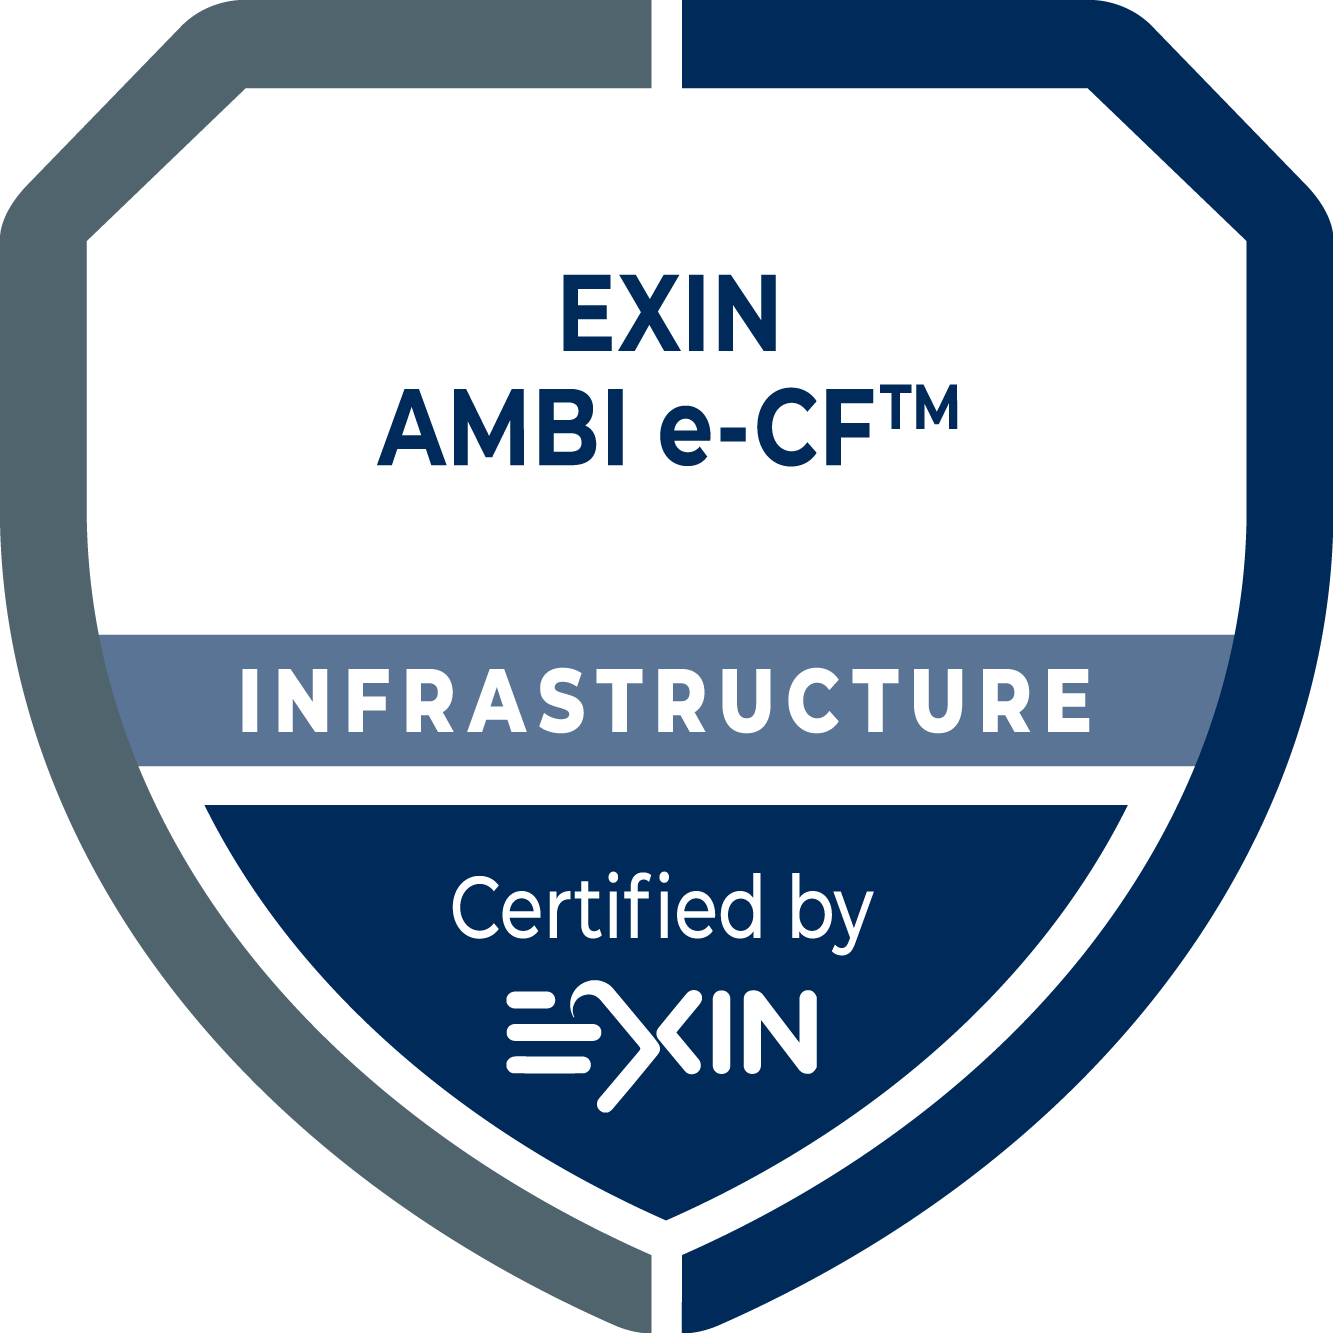 EXIN AMBI e-CF®: Infrastructure